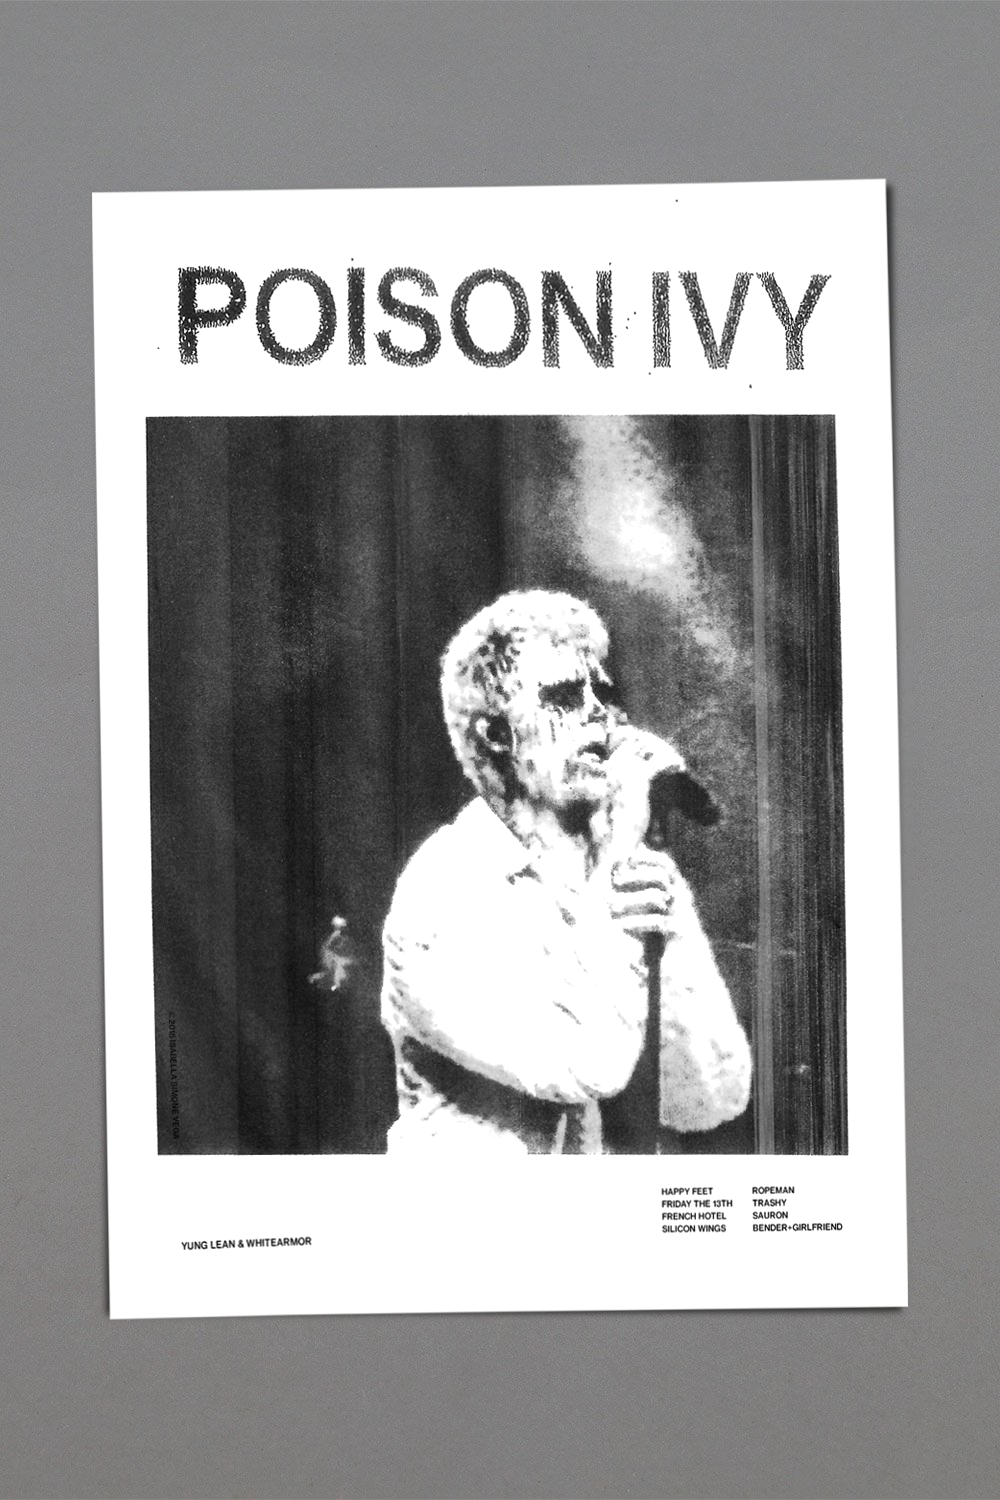 POISON IVY POSTER (WHITE)